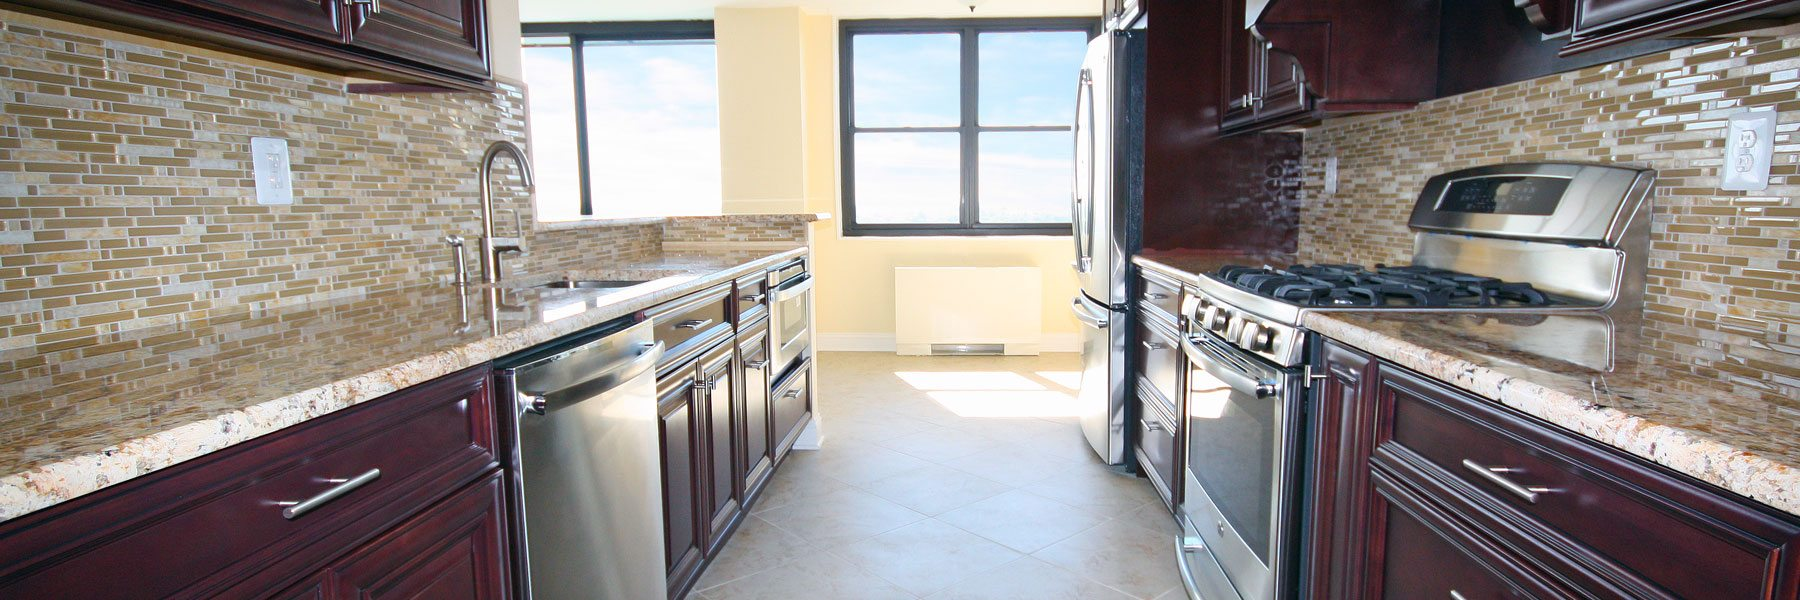 Country Club Towers Apartments For Rent in Clifton, NJ Kitchen